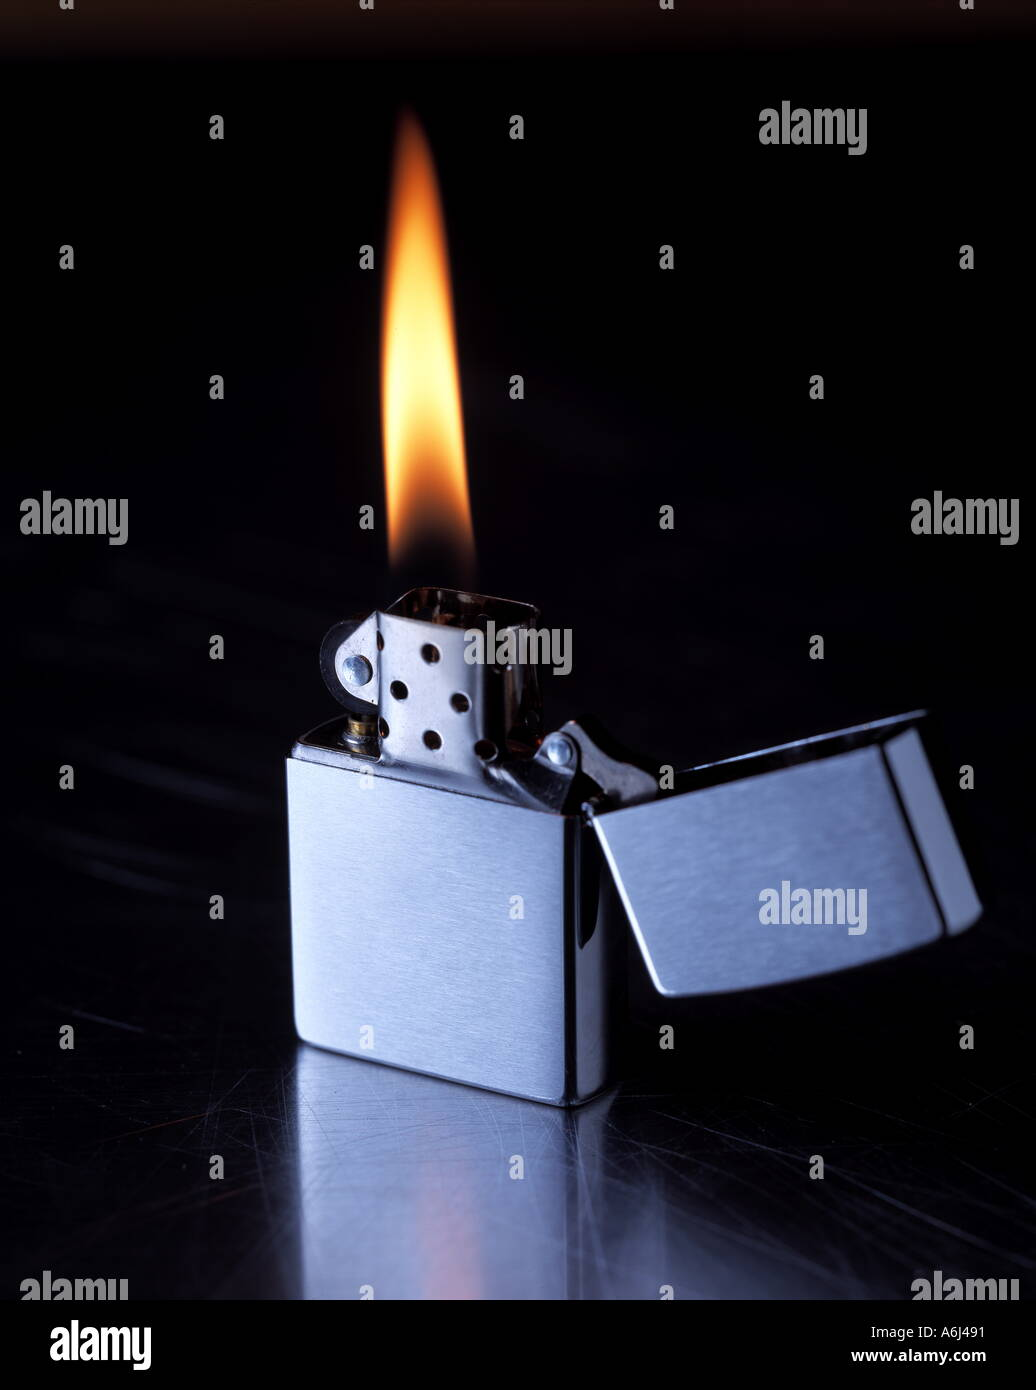 Zippo Lighter Flame Stock Photo 2139280